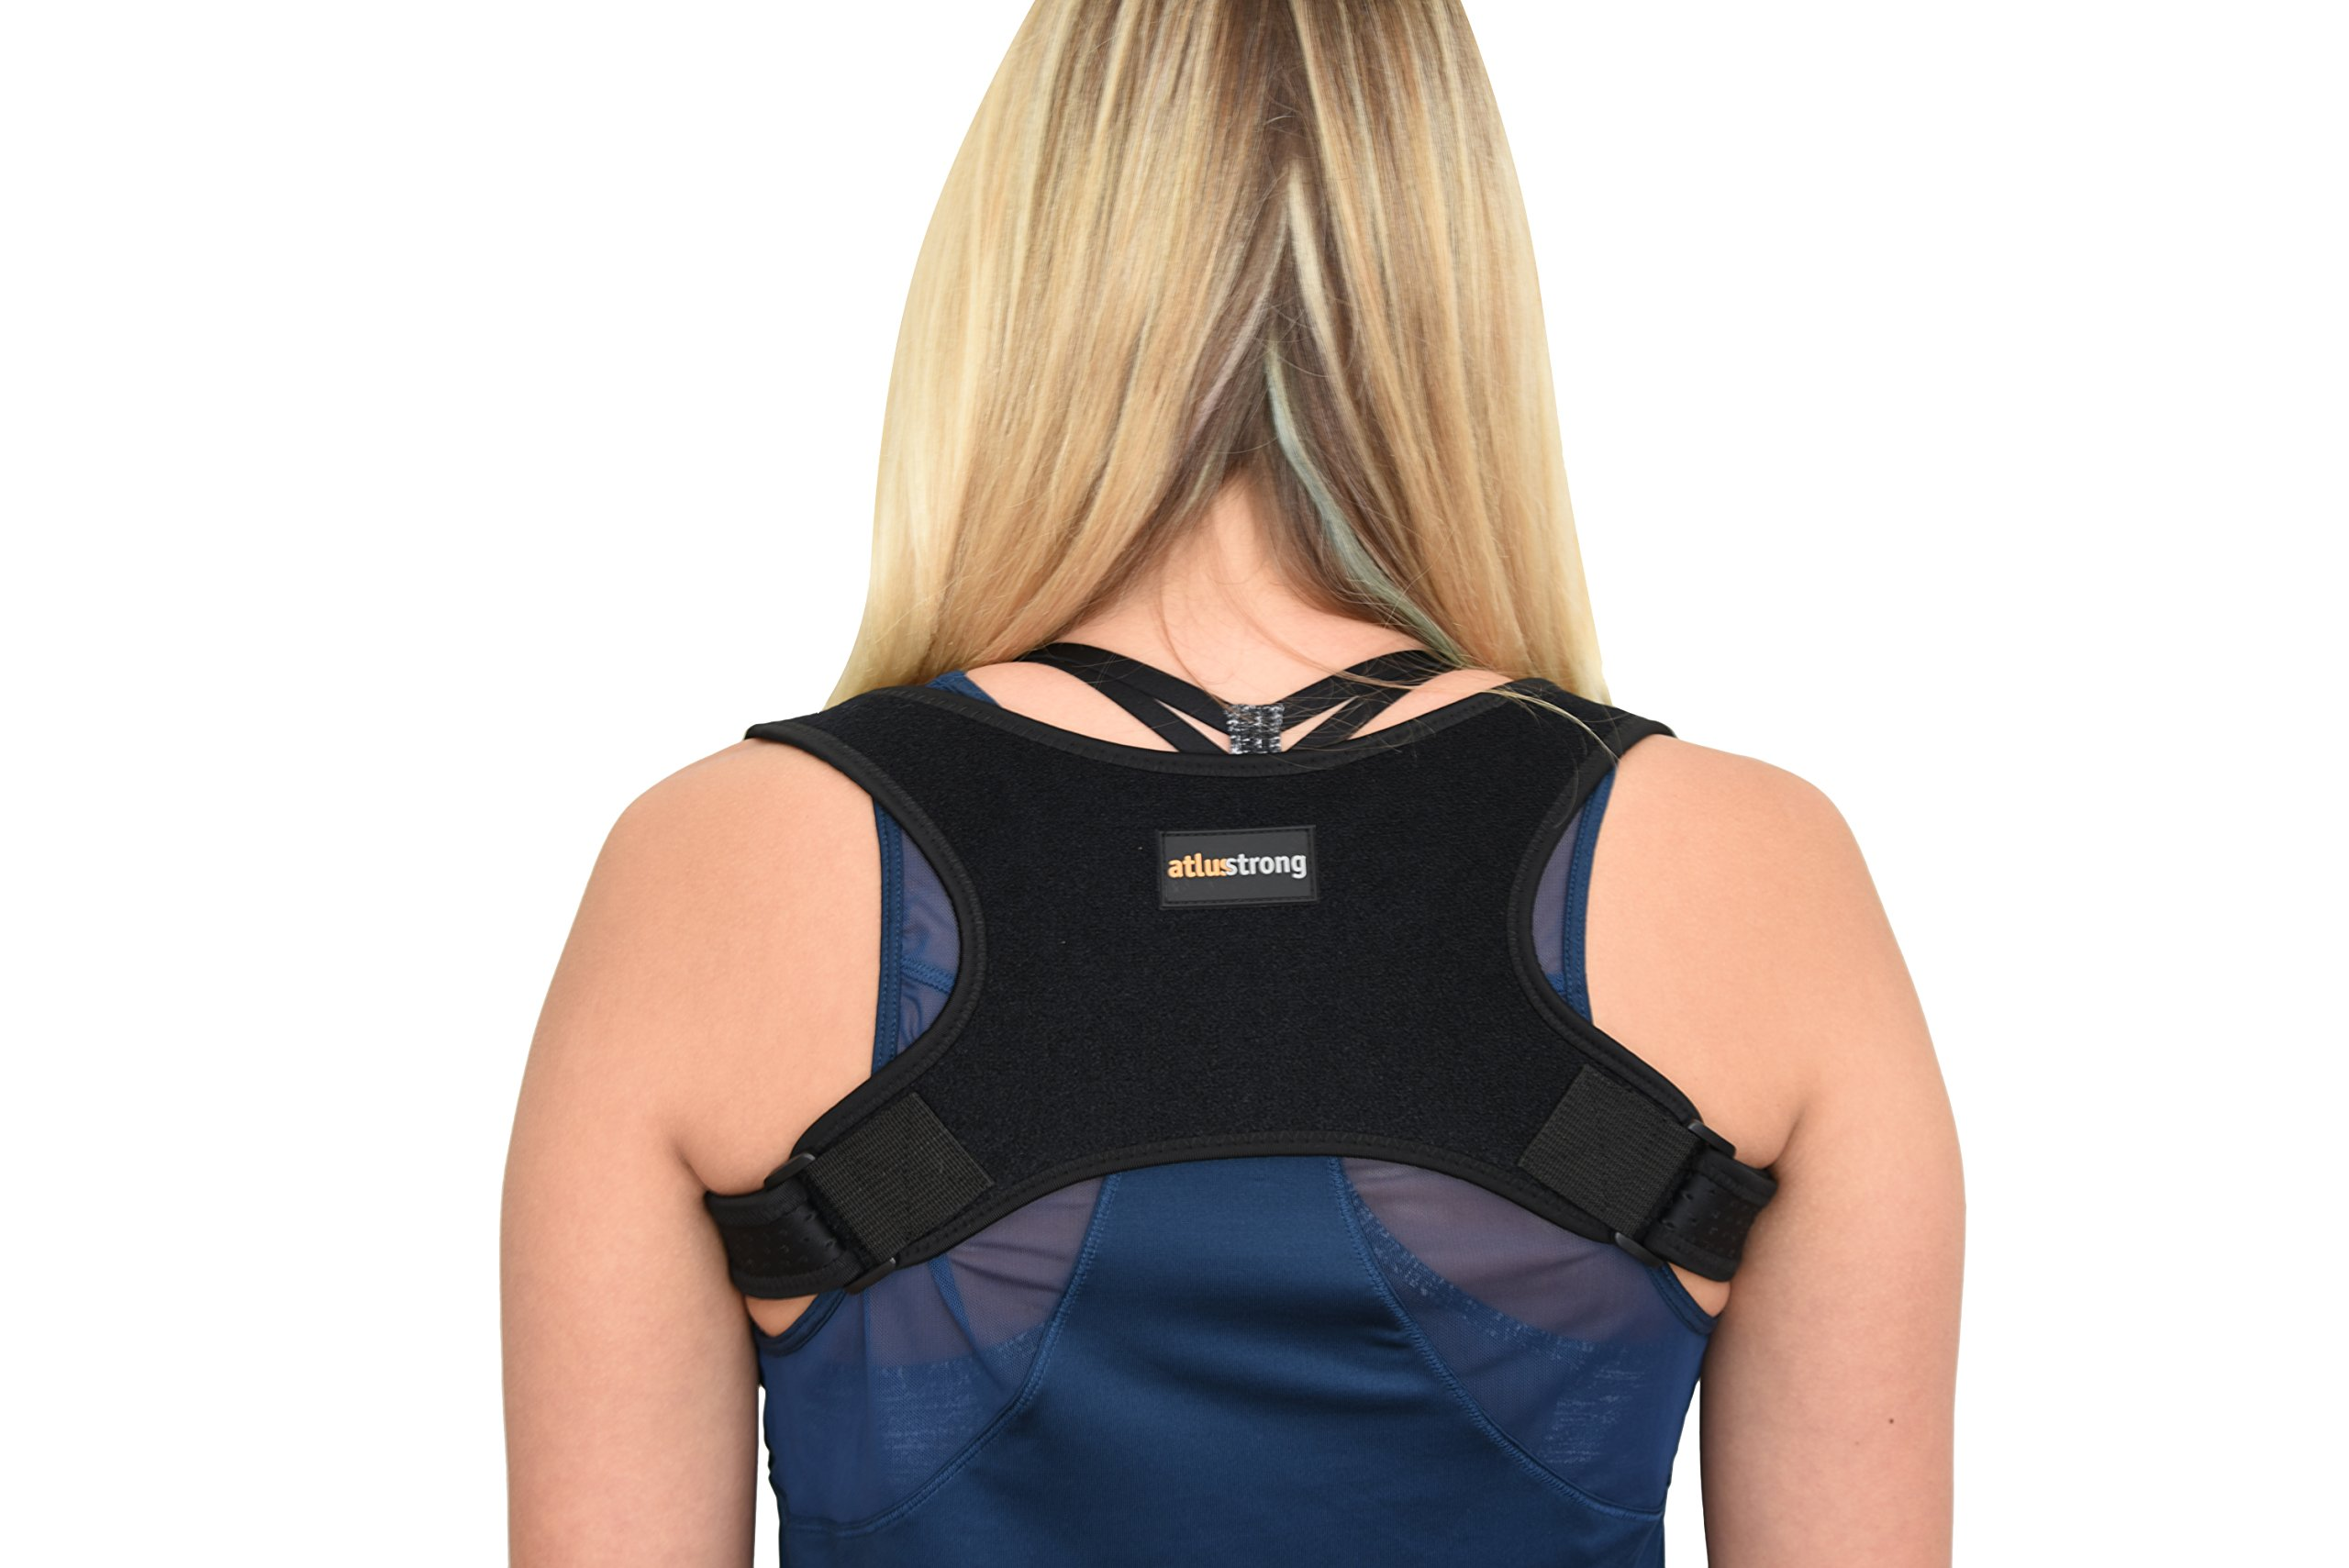 Back Posture Corrector by Atlus Strong - Upper Back and Clavicle Support Brace - Relieves Back and Shoulder Pain - Improves Posture Immediately - Adjustable Size - for Men and Women